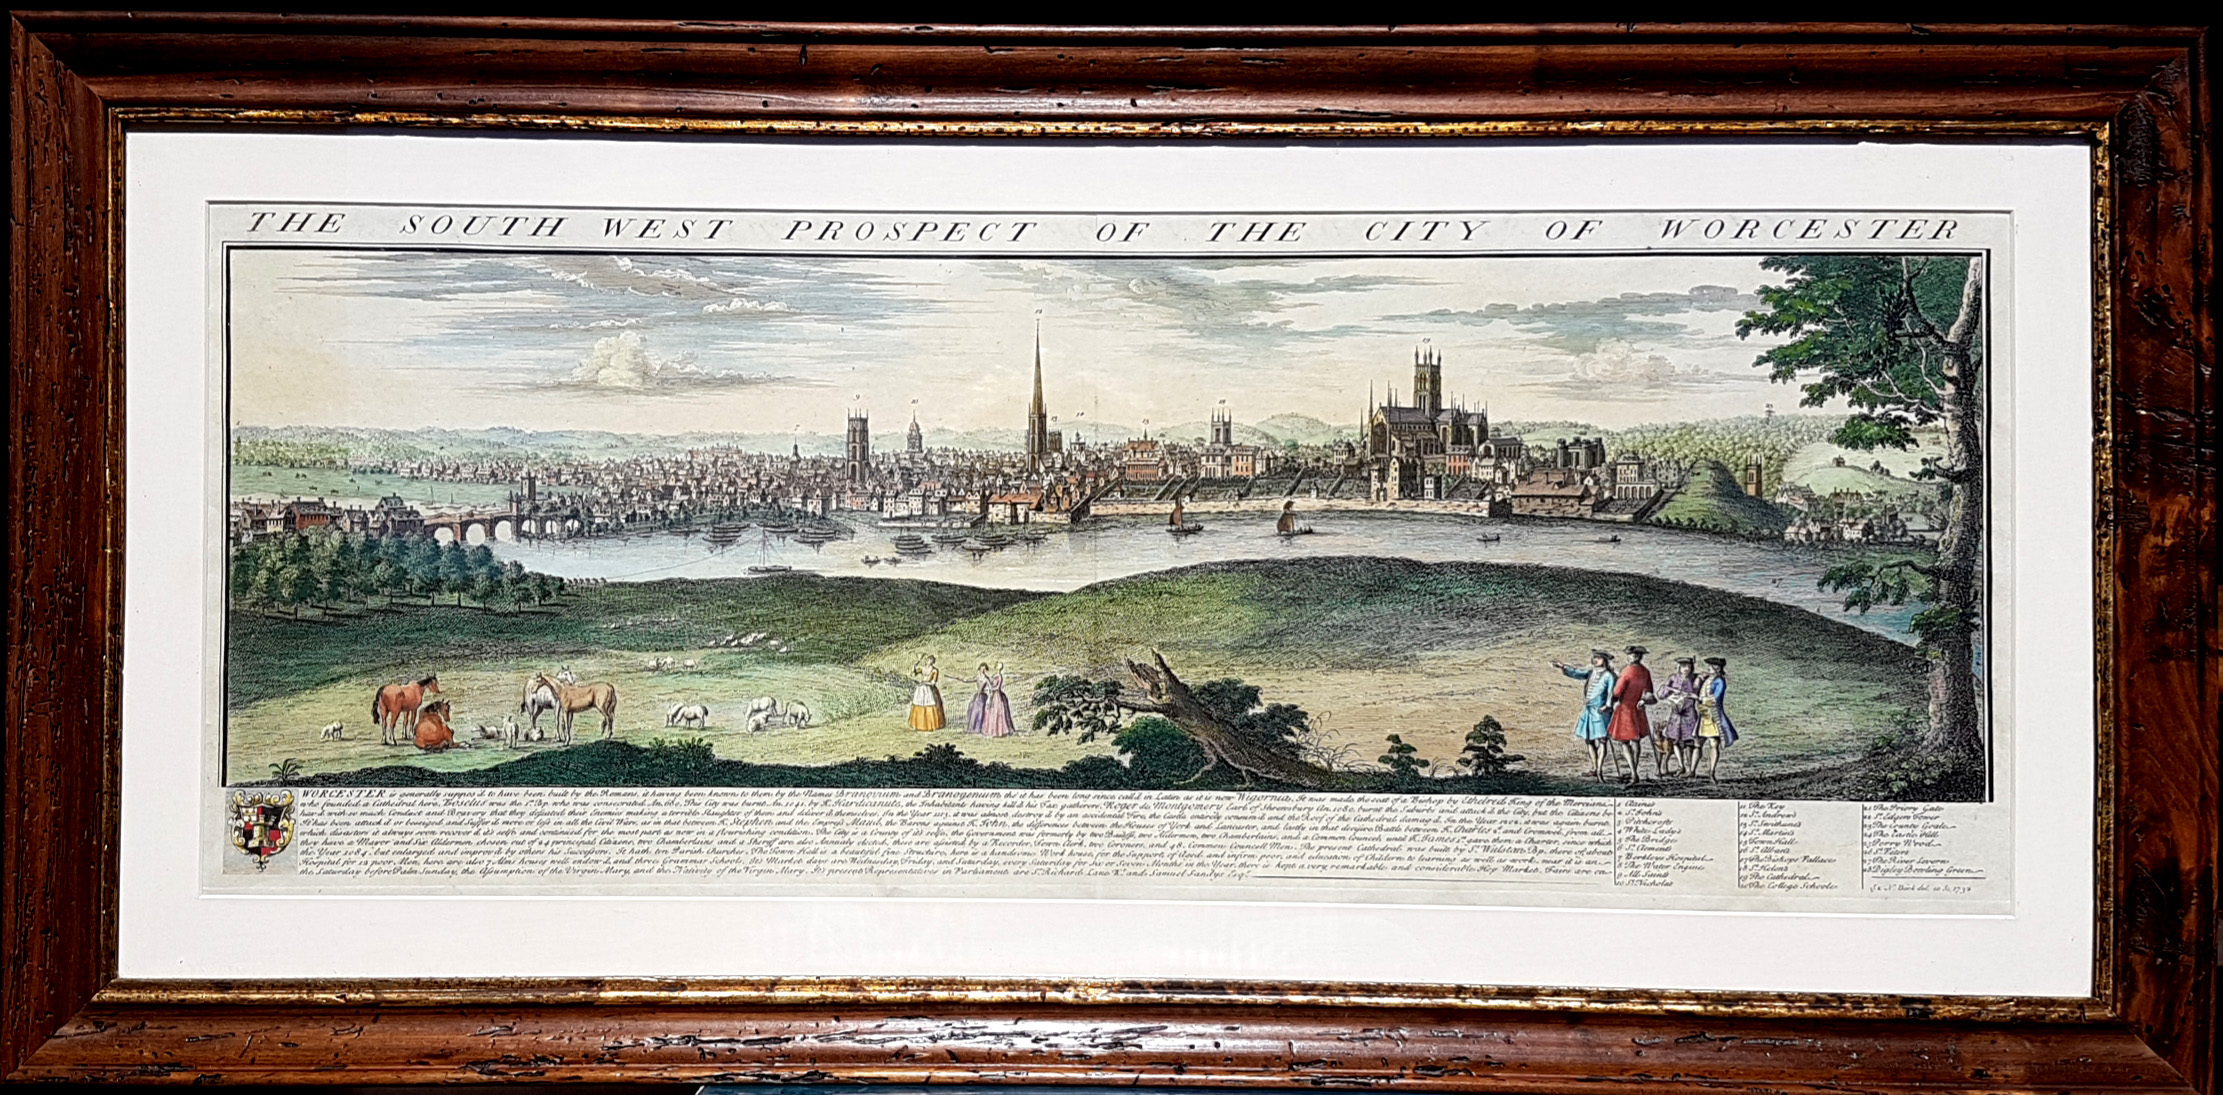 Framed. Samuel & Nathaniel Buck South-West Prospect, Worcester c1732.